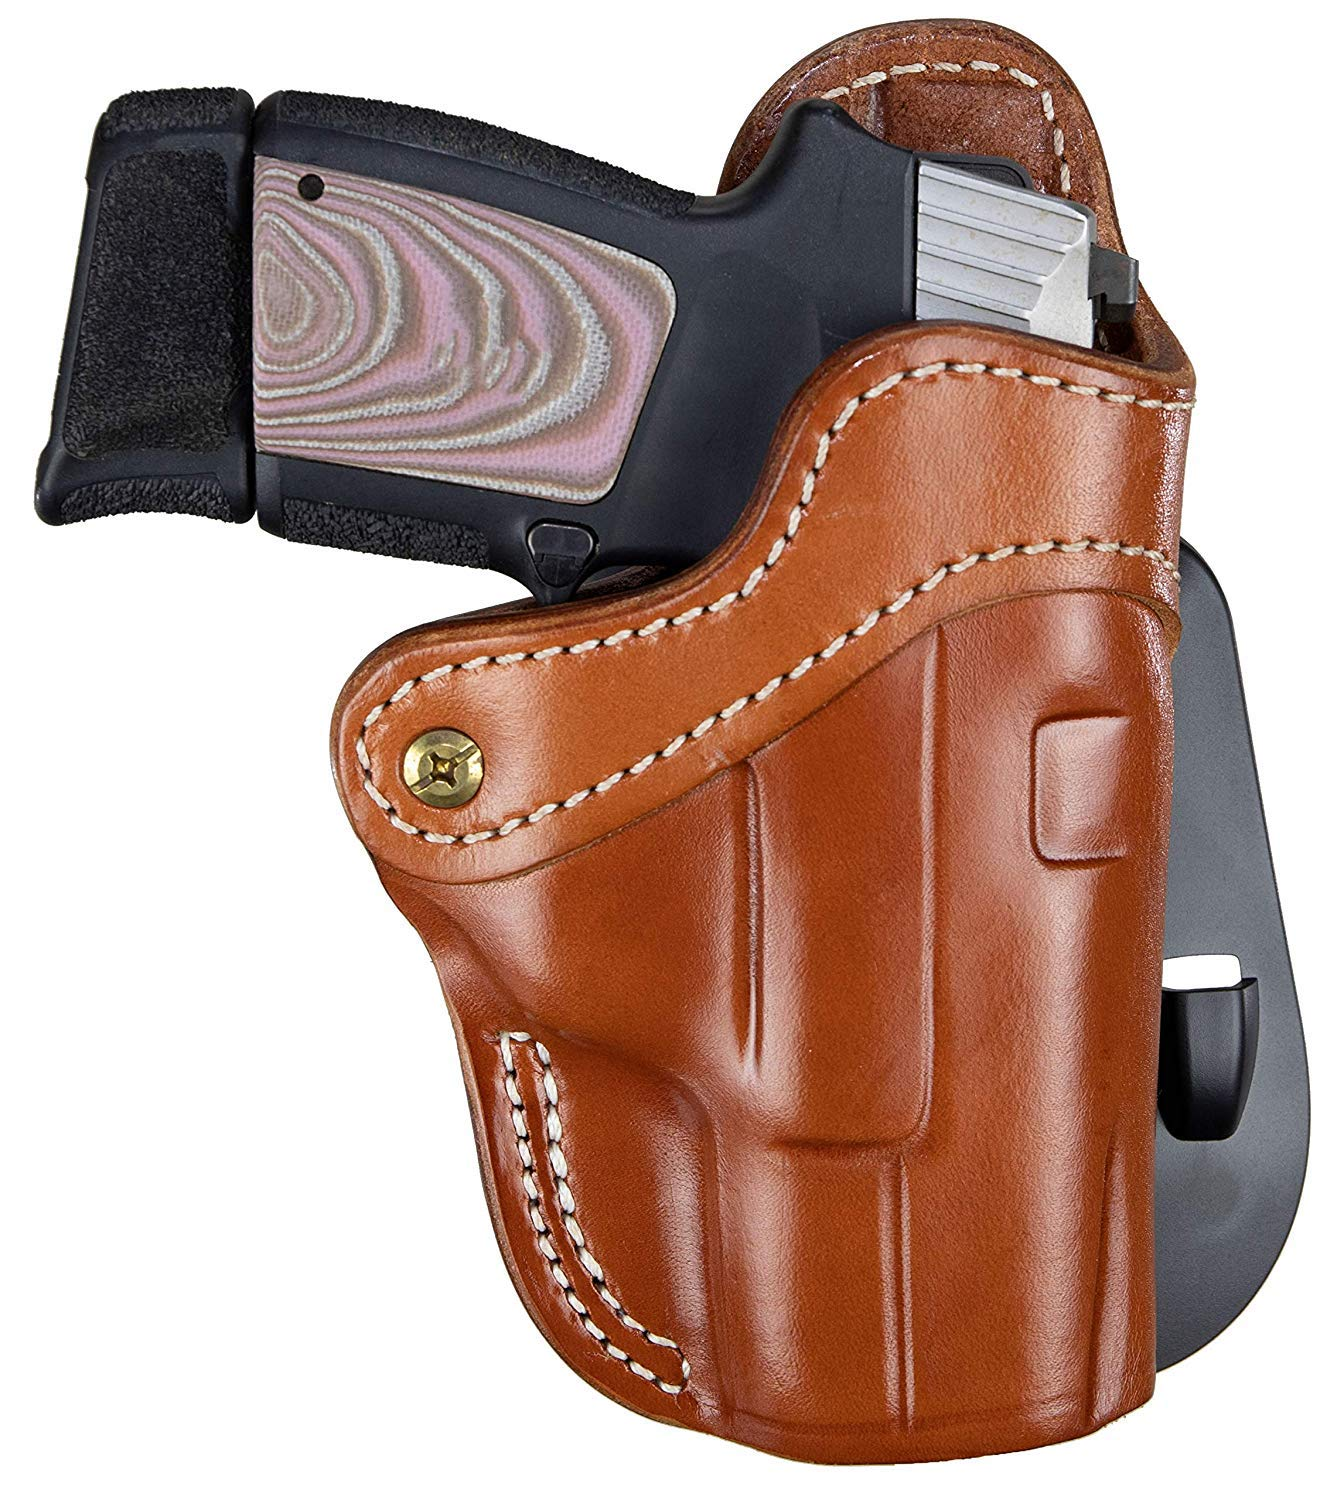 1791 GUNLEATHER Glock 19 Paddle Holster - OWB CCW G19 Holster - Right Handed Leather Gun Holster for Belts - Compatible with Glock 19, 23, 27, Sig P225, Springfield XDS